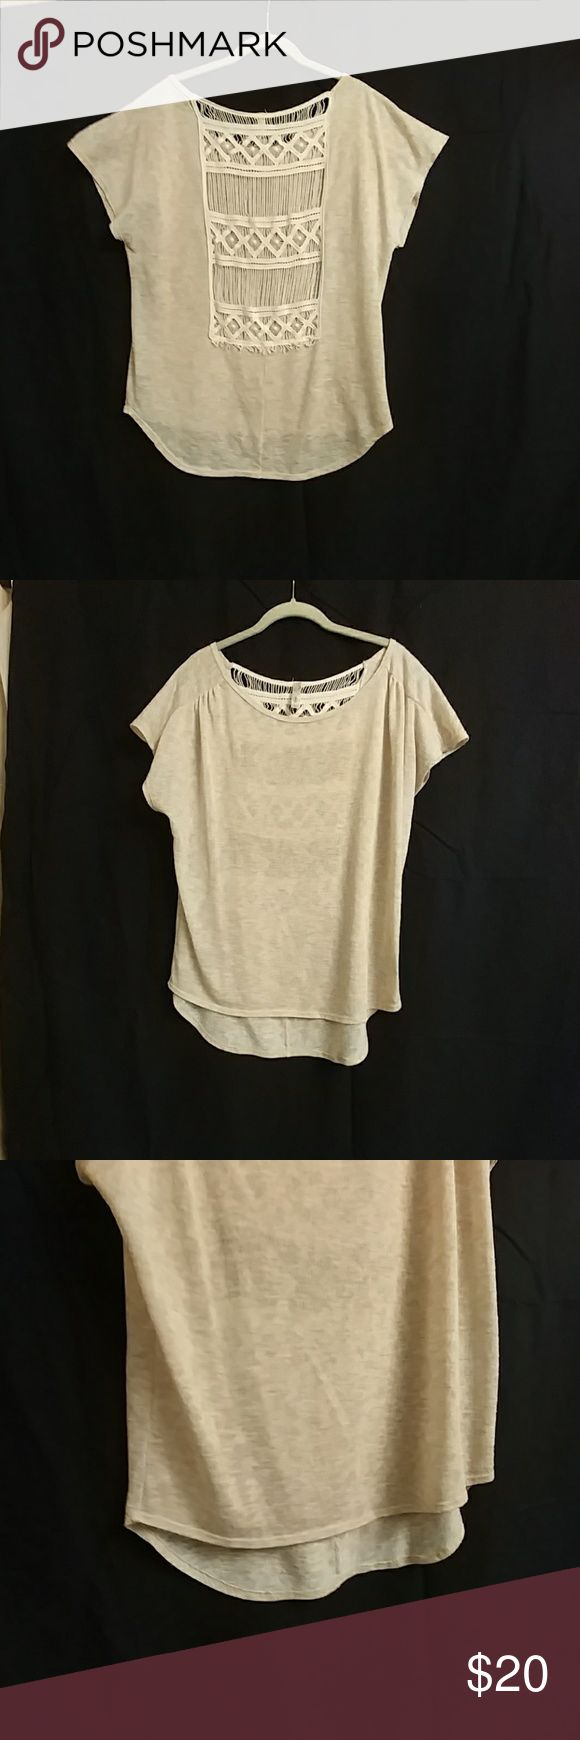 Shirt / Top beige knit, high-low, with woven back. This is a vert easy bteezy top with a open back, great to show off that summer tan. Tops